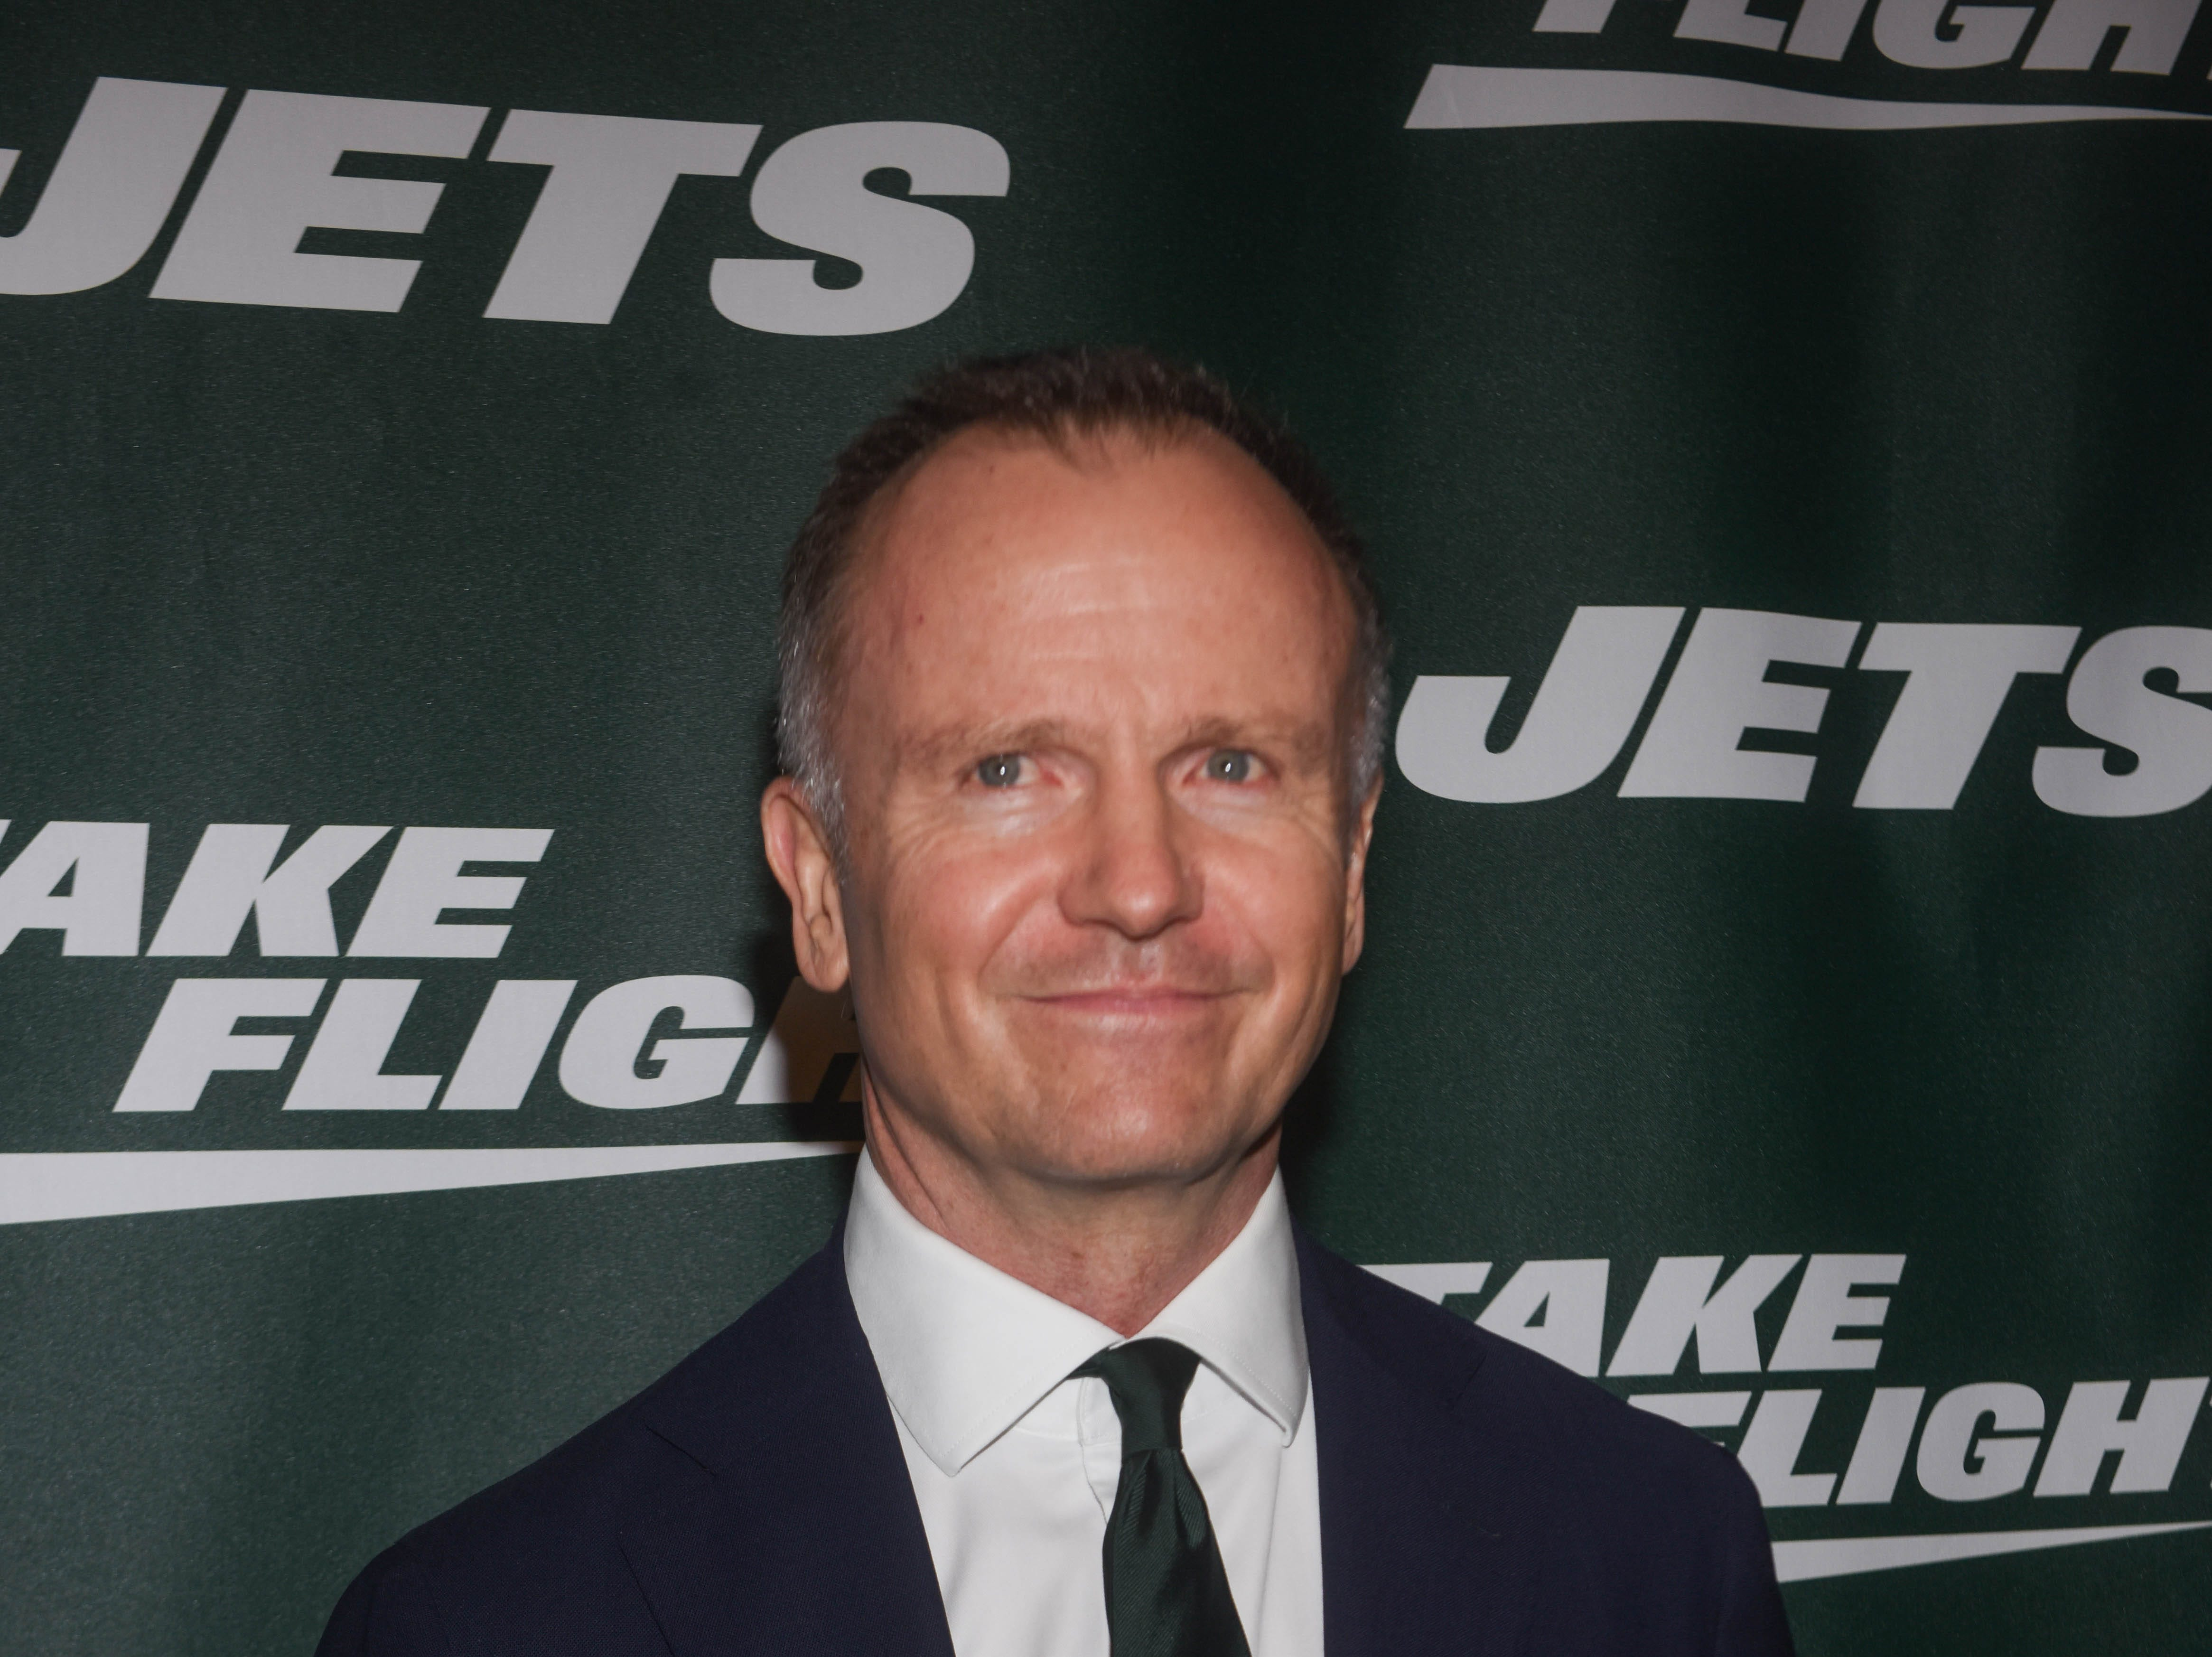 Christopher Johnson (NY Jets CEO and Chairman). The NY Jets unveiled their new football uniforms with an event hosted by JB Smoove at Gotham Hall in New York. 04/05/2019